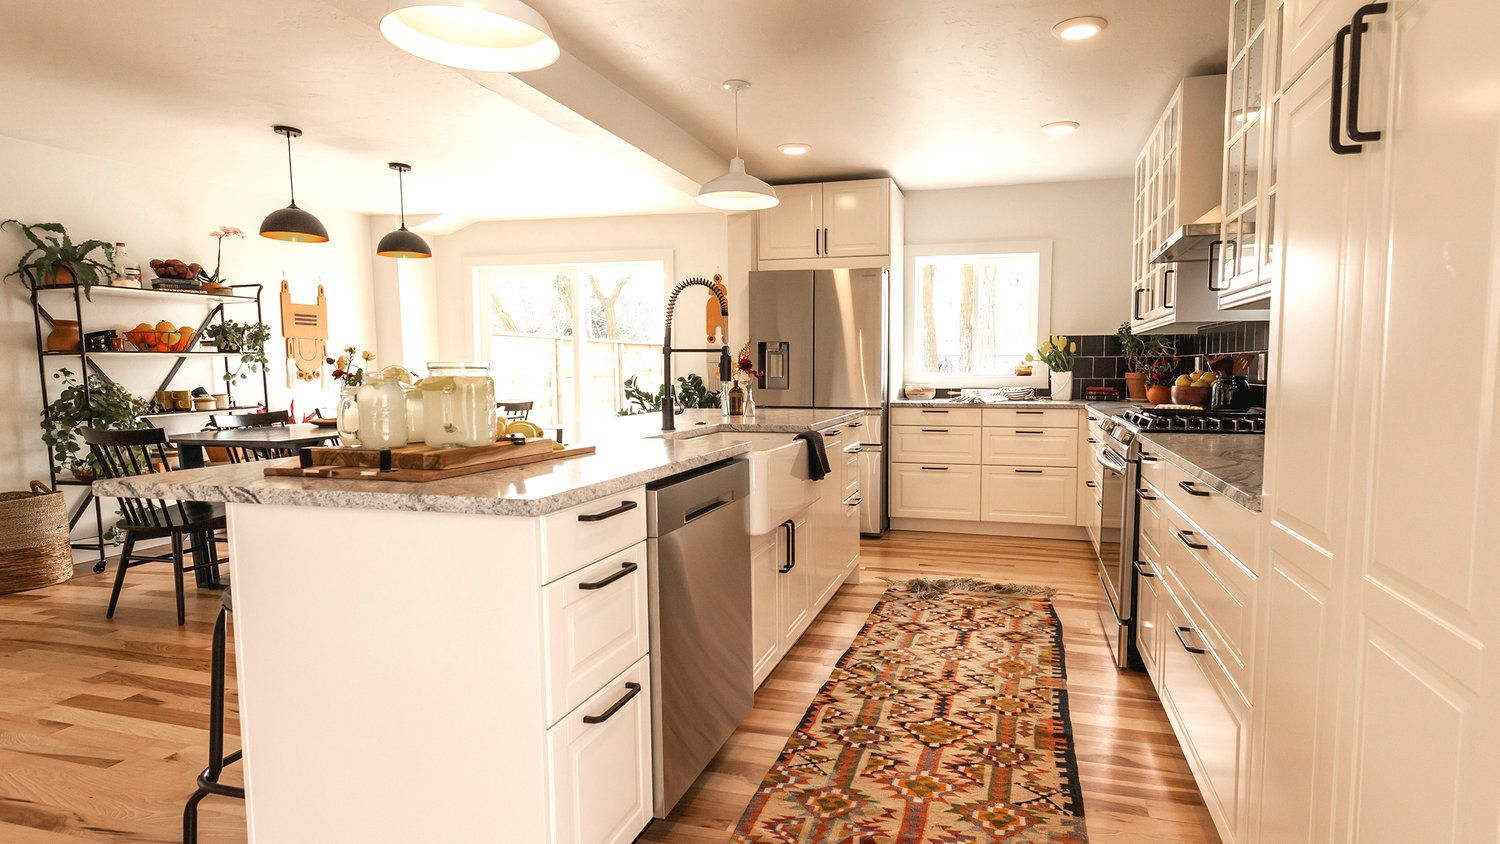 Timber U0026 Love   Boise Boys   White Cabinets, Great Floors, Lovely Rug In  Kitchen